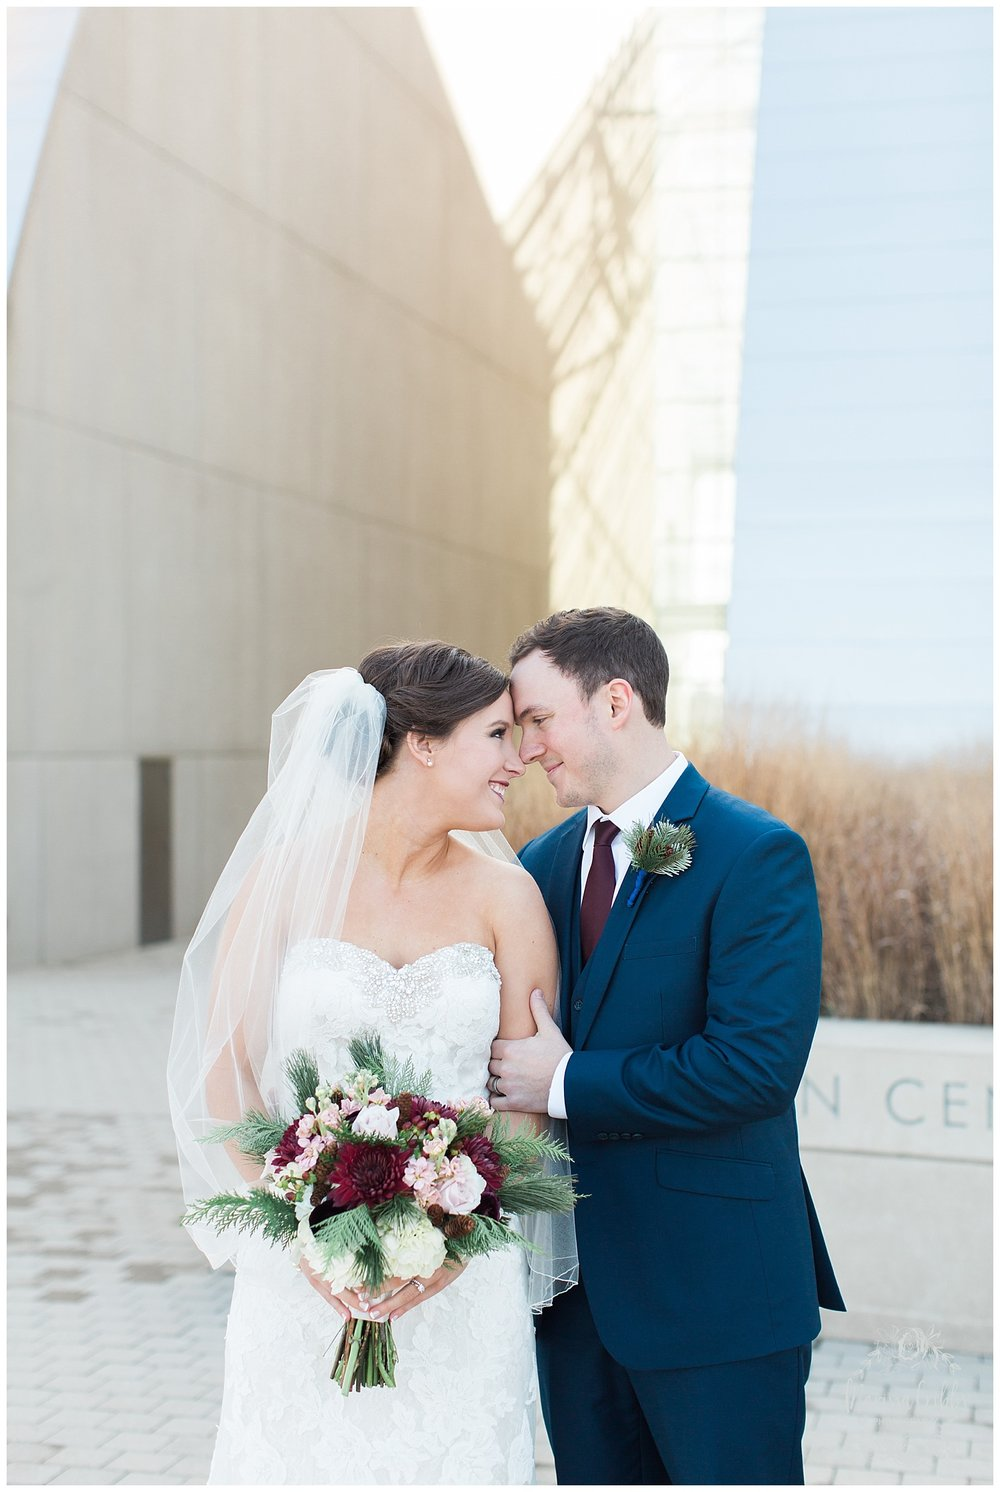 Kelsey & Cory | The Venue at Willow Creek Wedding | Kauffman Performing Arts | Marissa Cribbs Photography | KC Wedding Photographer_0332.jpg